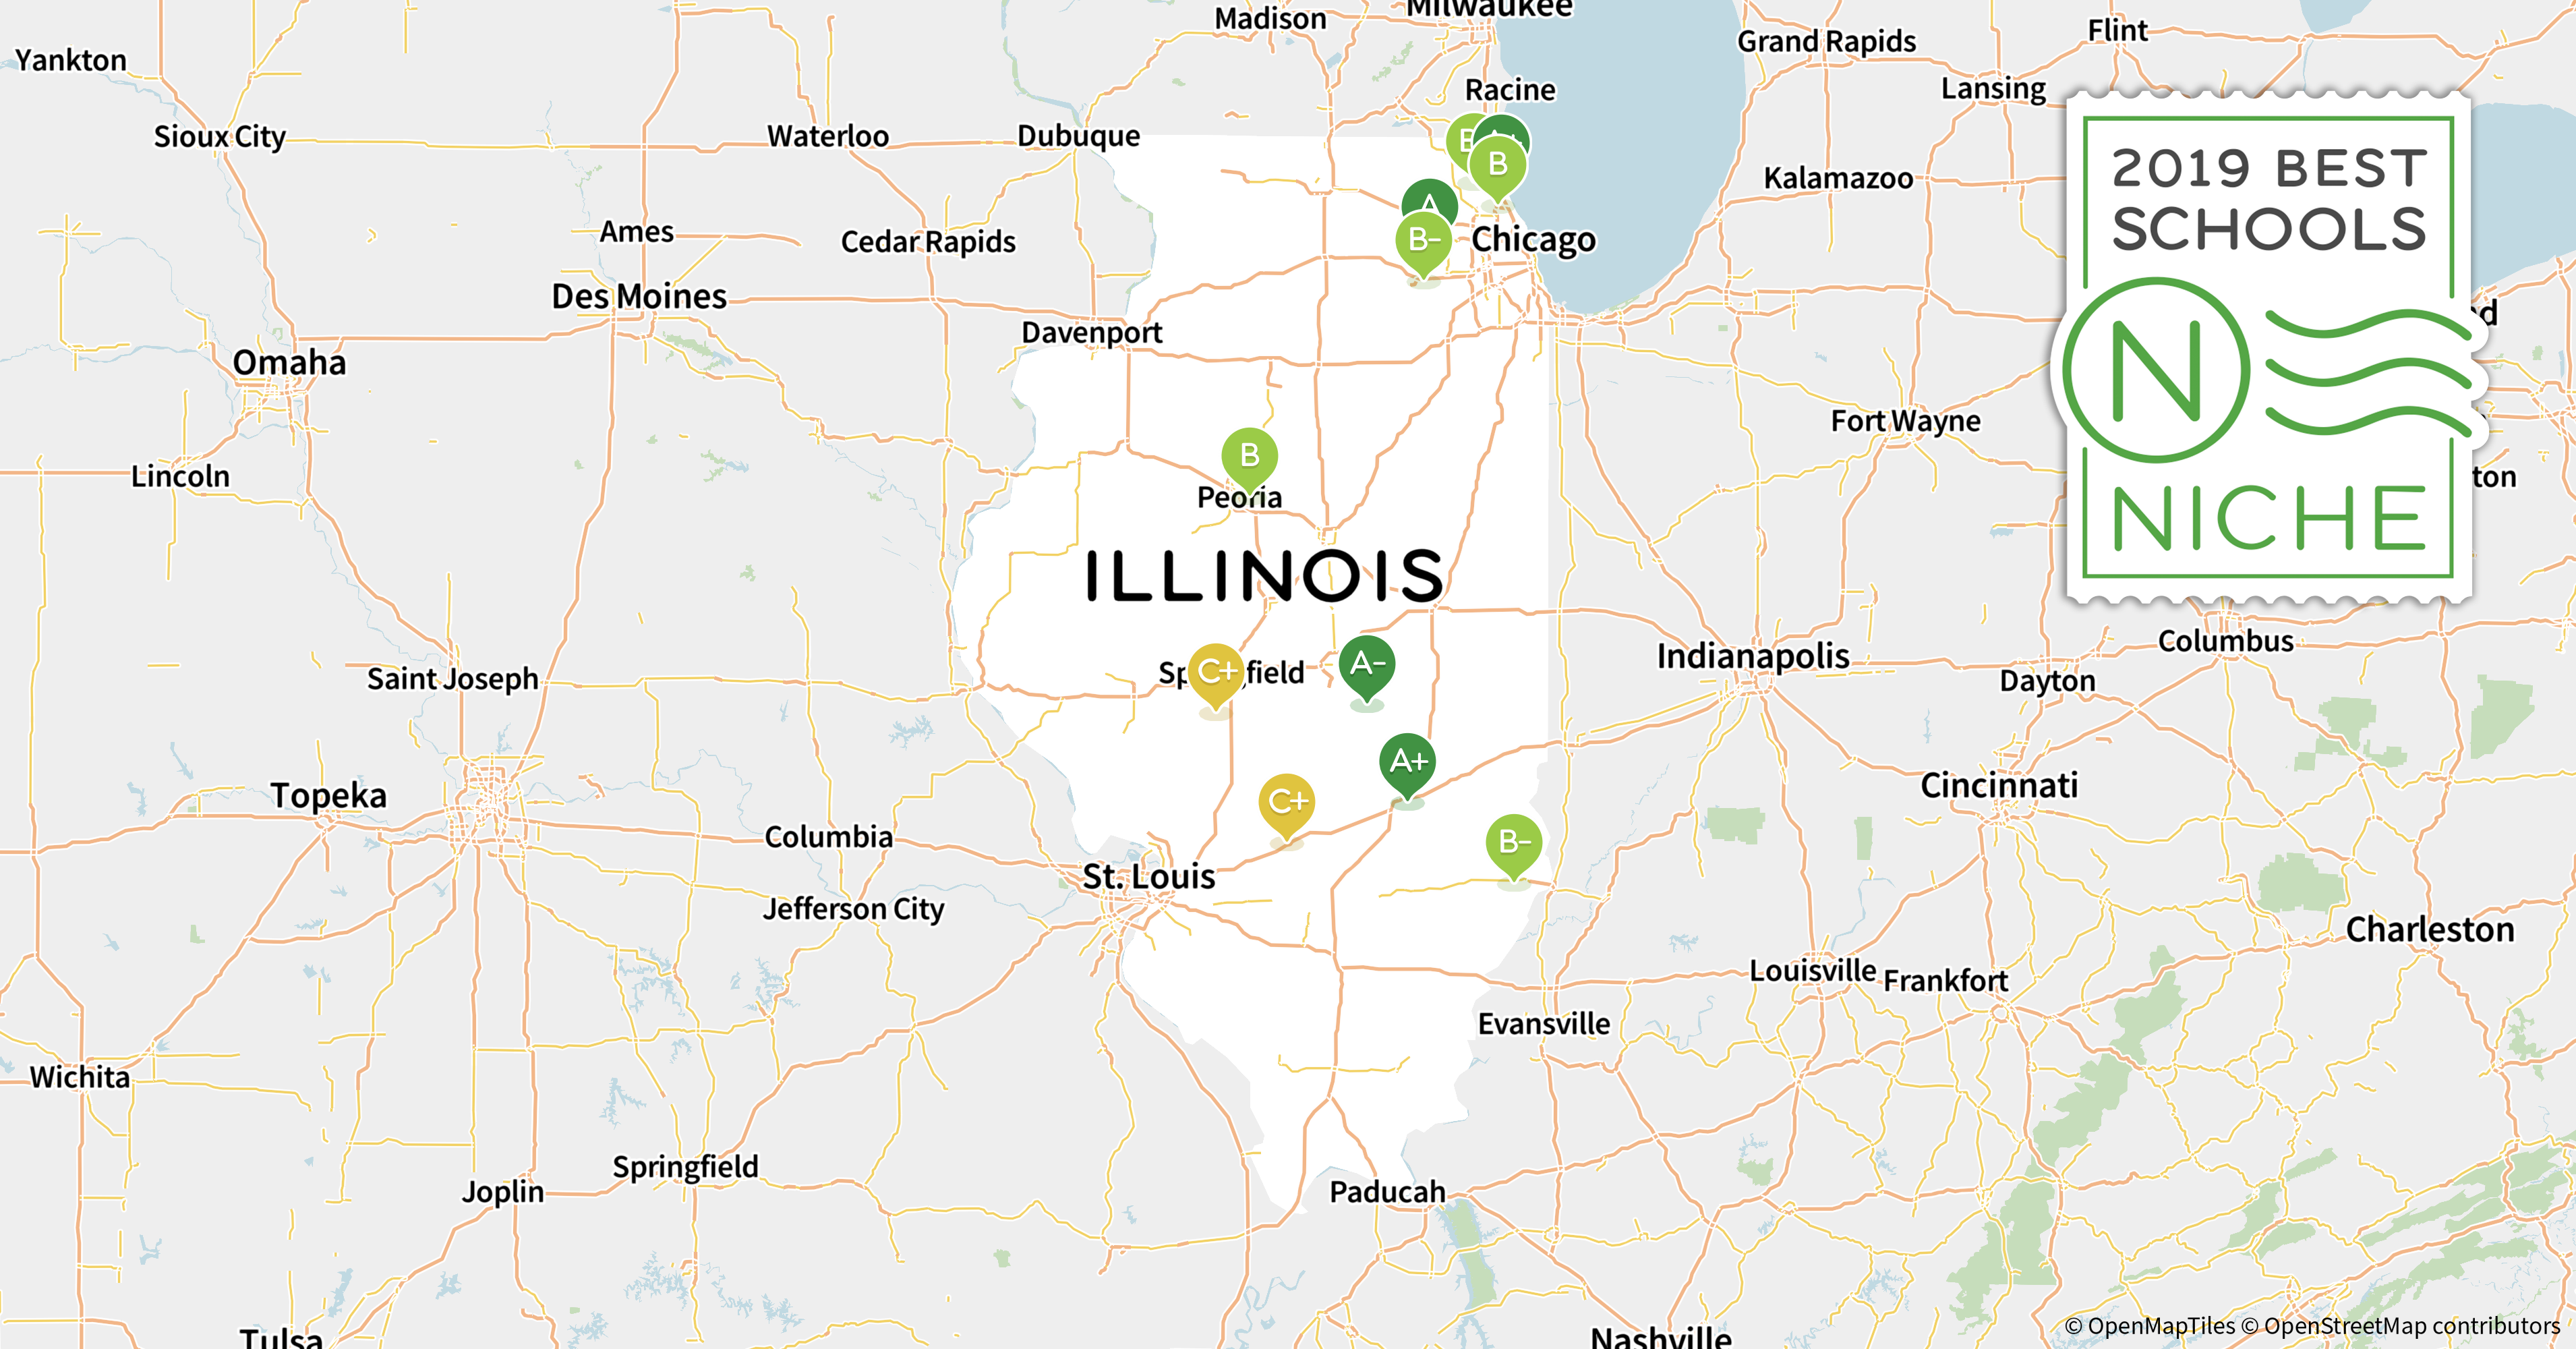 Palatine Illinois Map.2019 Best School Districts In Illinois Niche